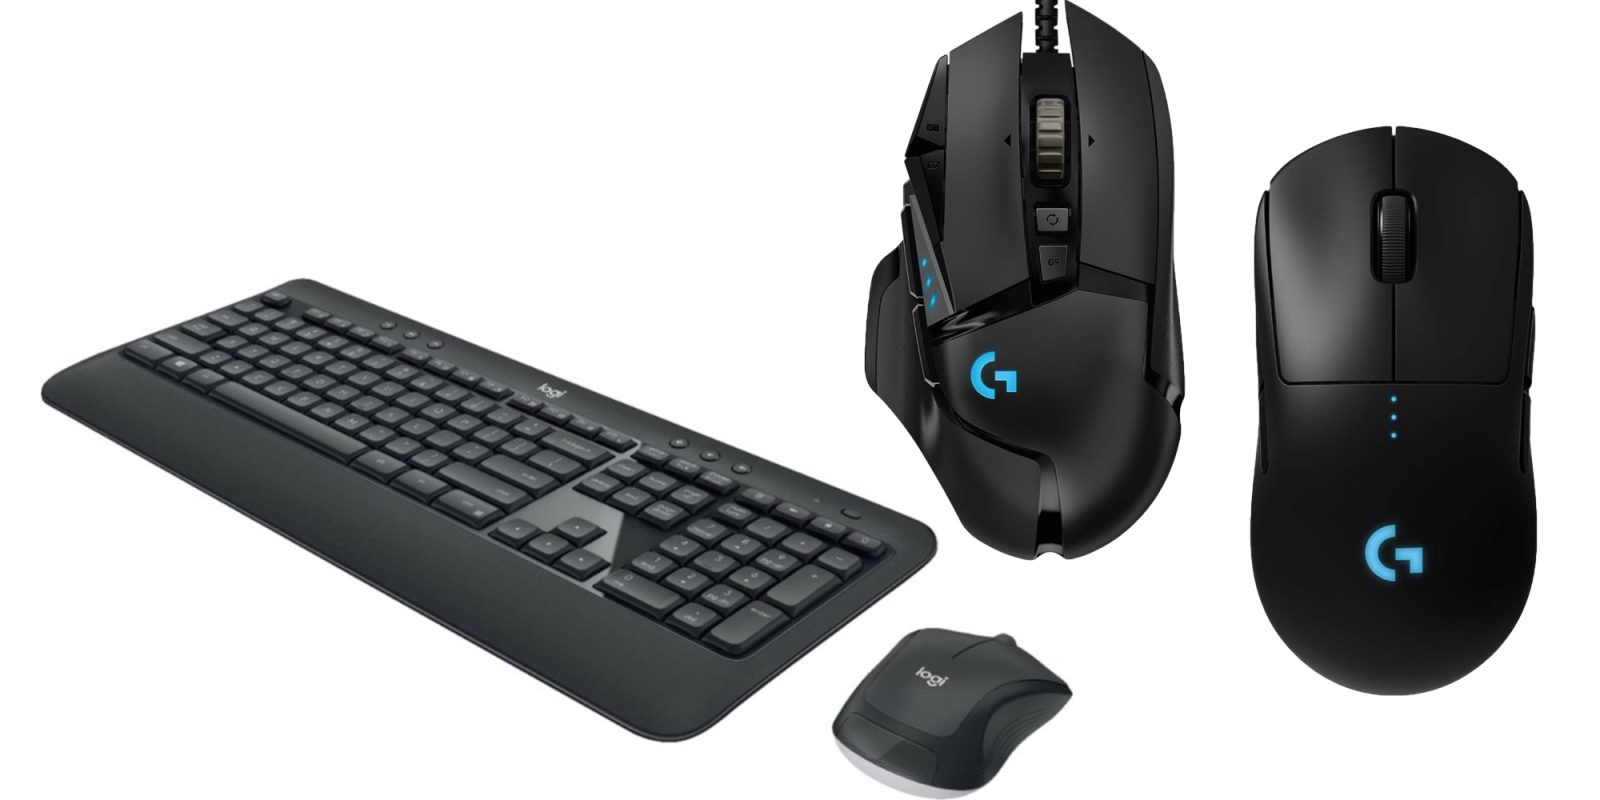 Upgrade your battlestation with Logitech peripherals at up to 25% off from $30